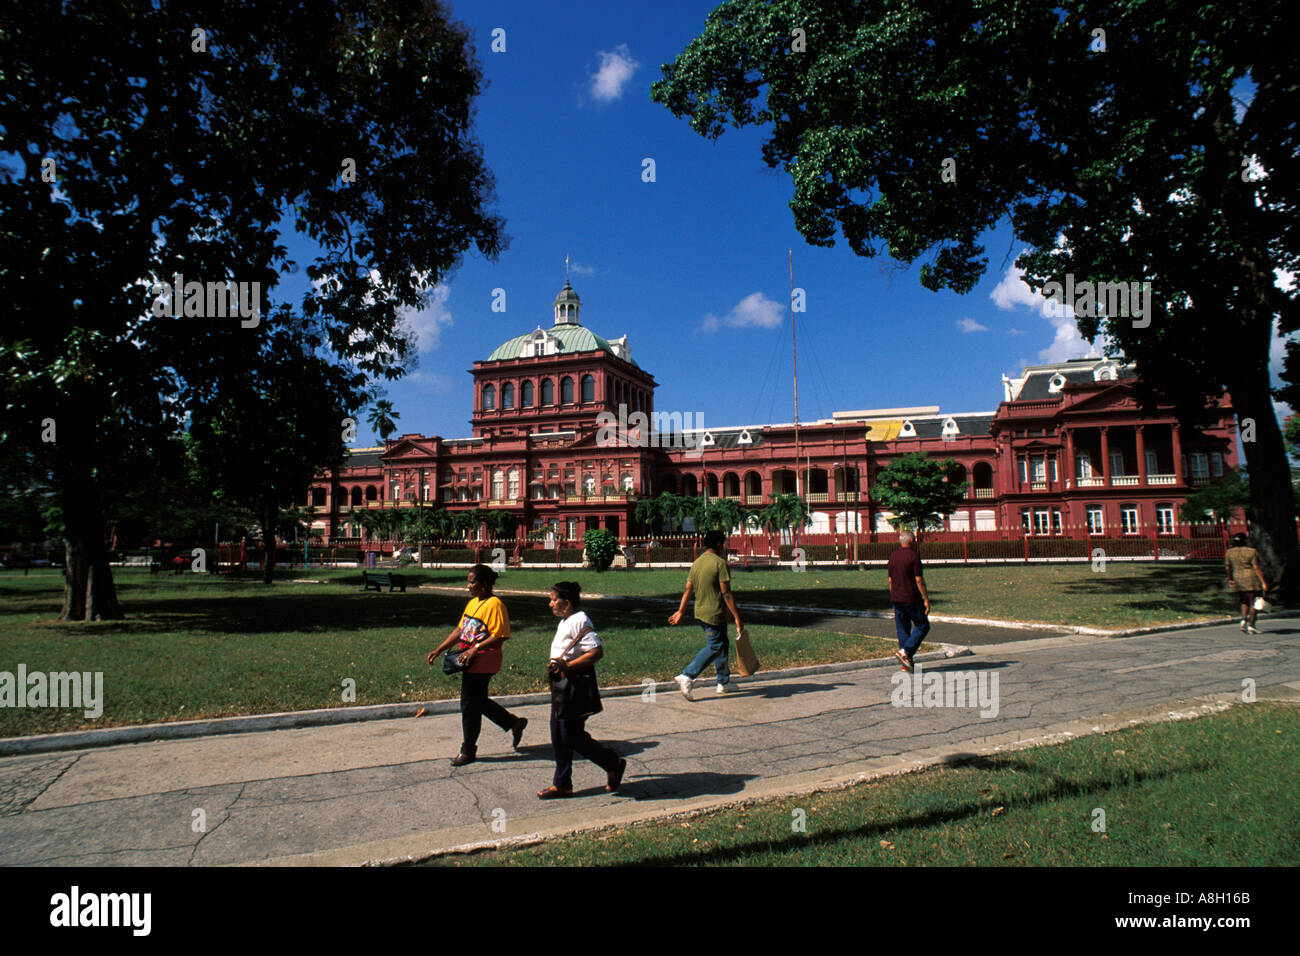 Trinidad, Port of Spain, Red House Parliament, Woodford Square Stock Photo